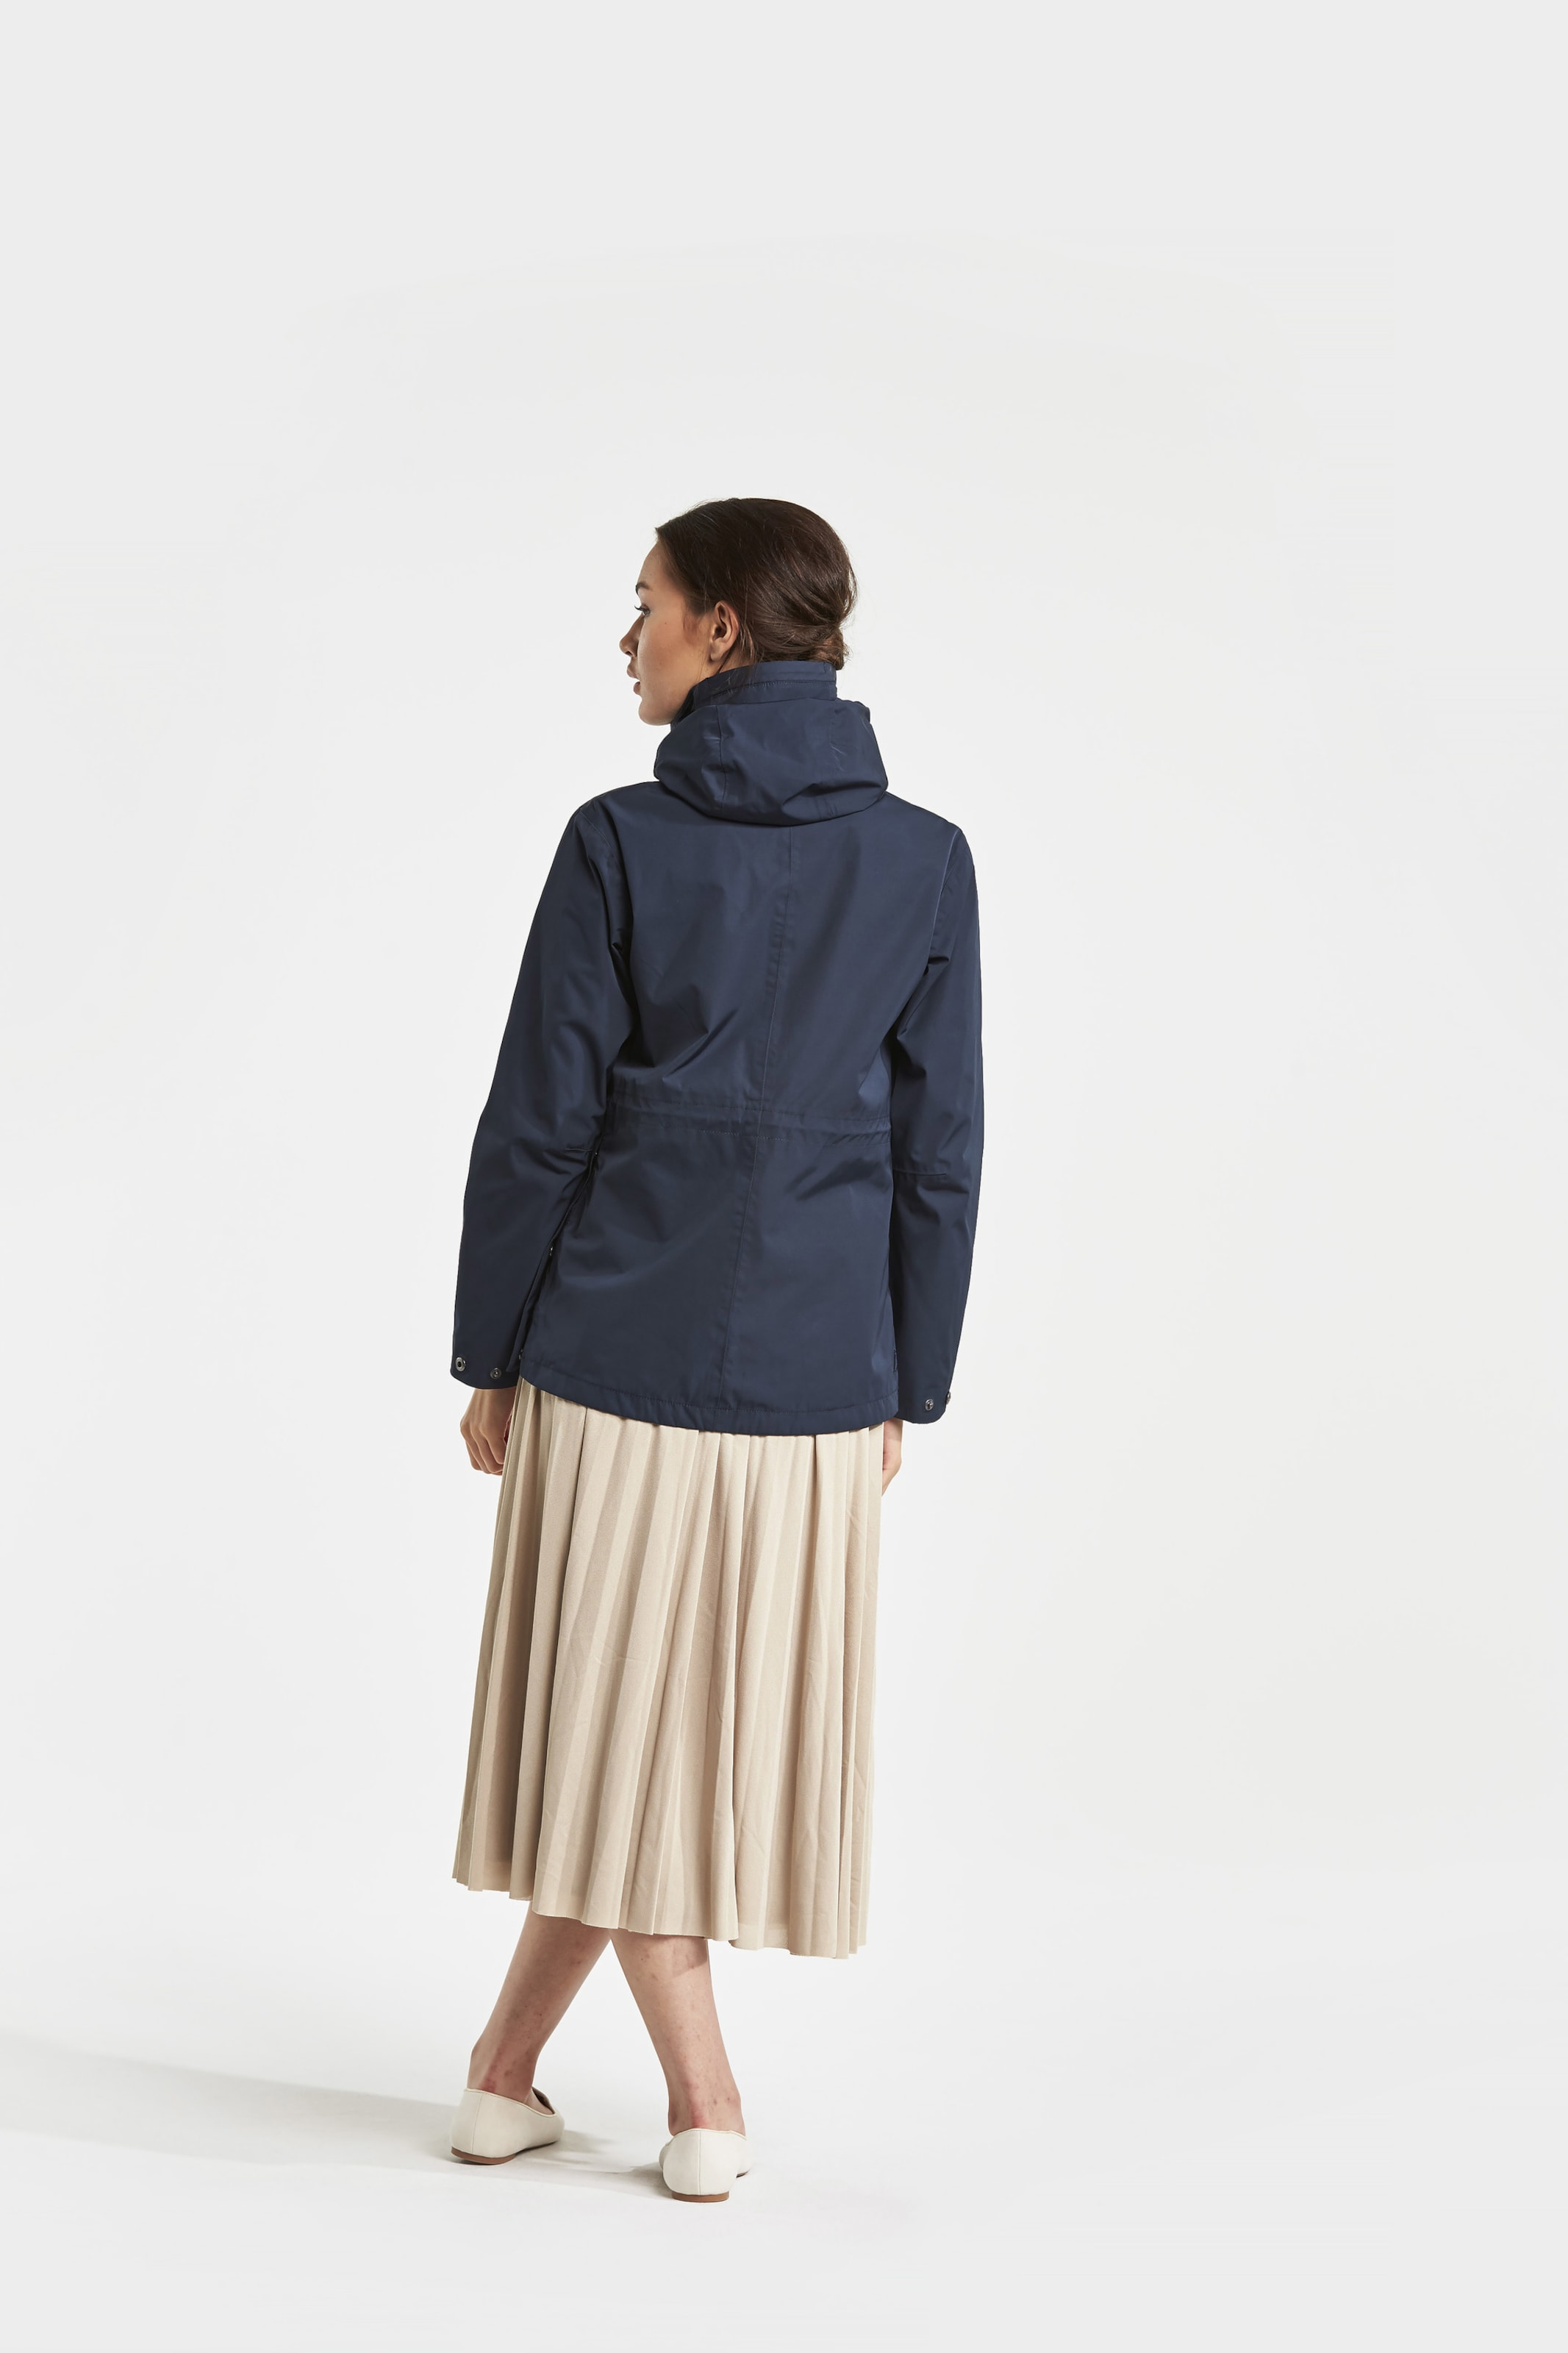 Jacke 'nora' In 'nora' Didriksons1913 In Didriksons1913 'nora' Jacke Navy Didriksons1913 Navy Jacke shQrCtd